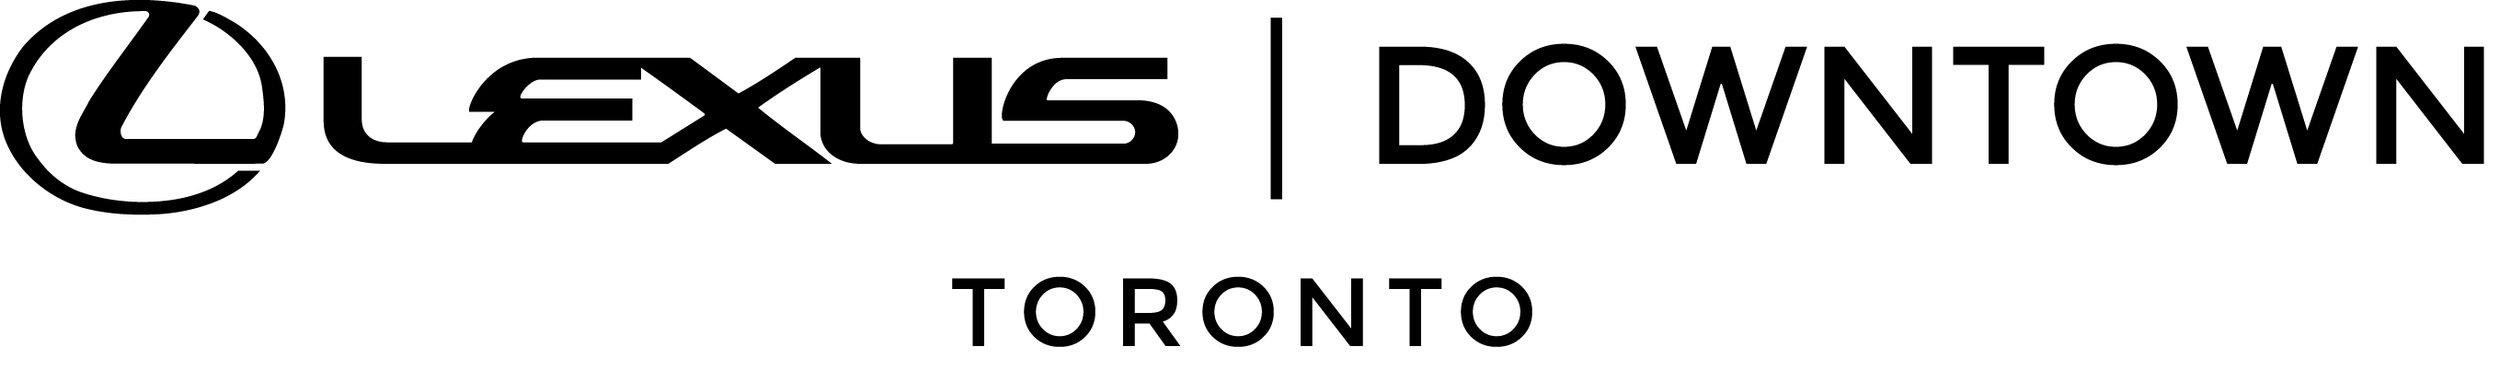 LD-logo-all-black-1.jpg